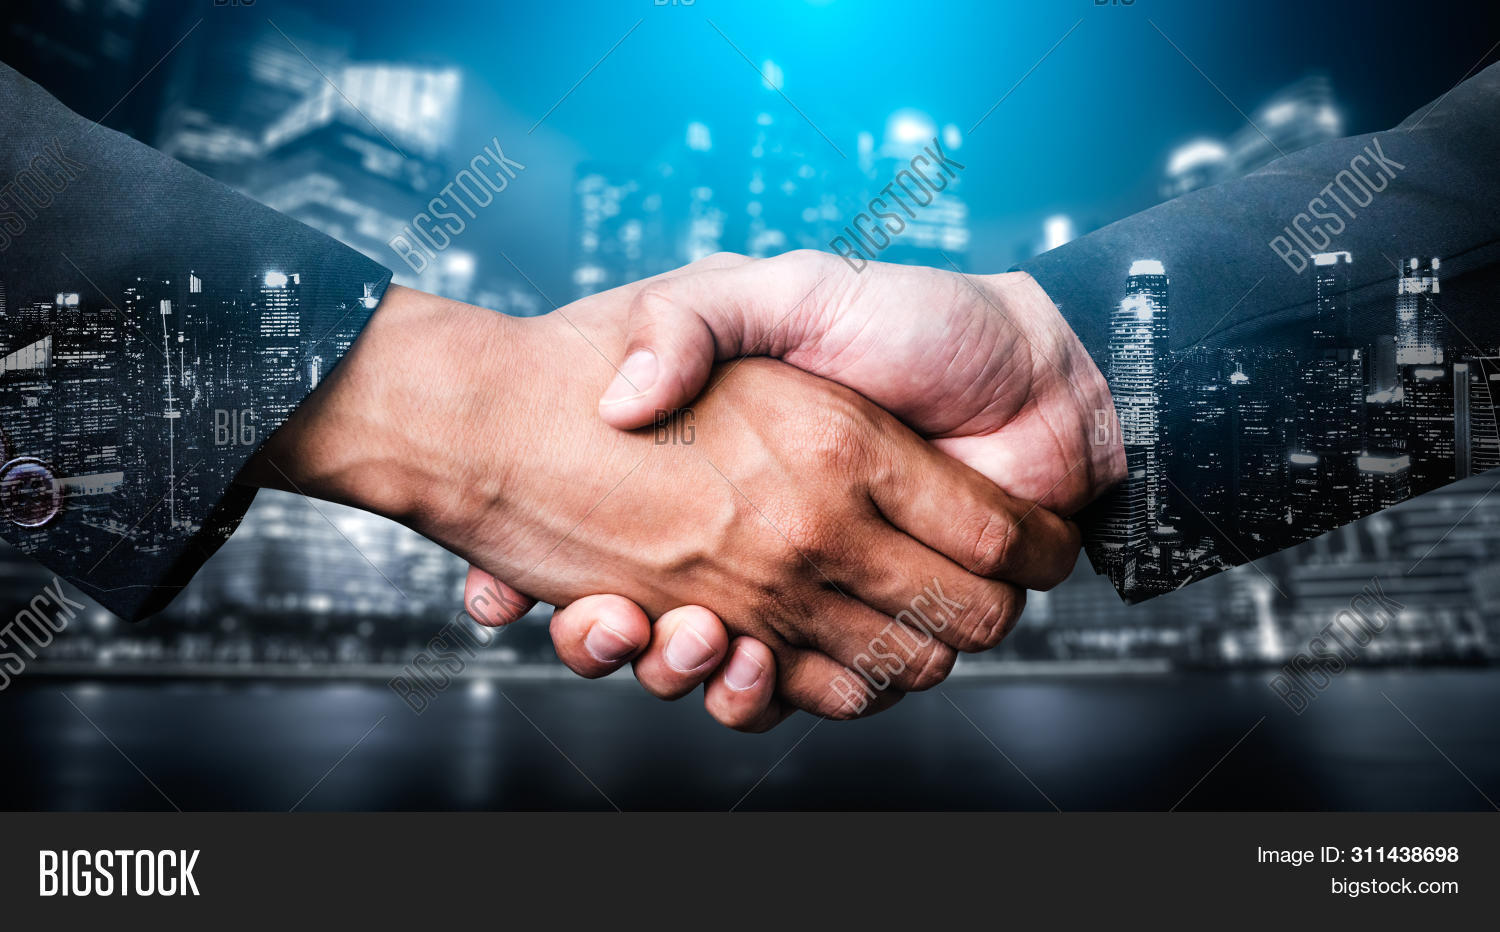 Double Exposure Image Of Business People Handshake On City Office Building In Background Showing Par